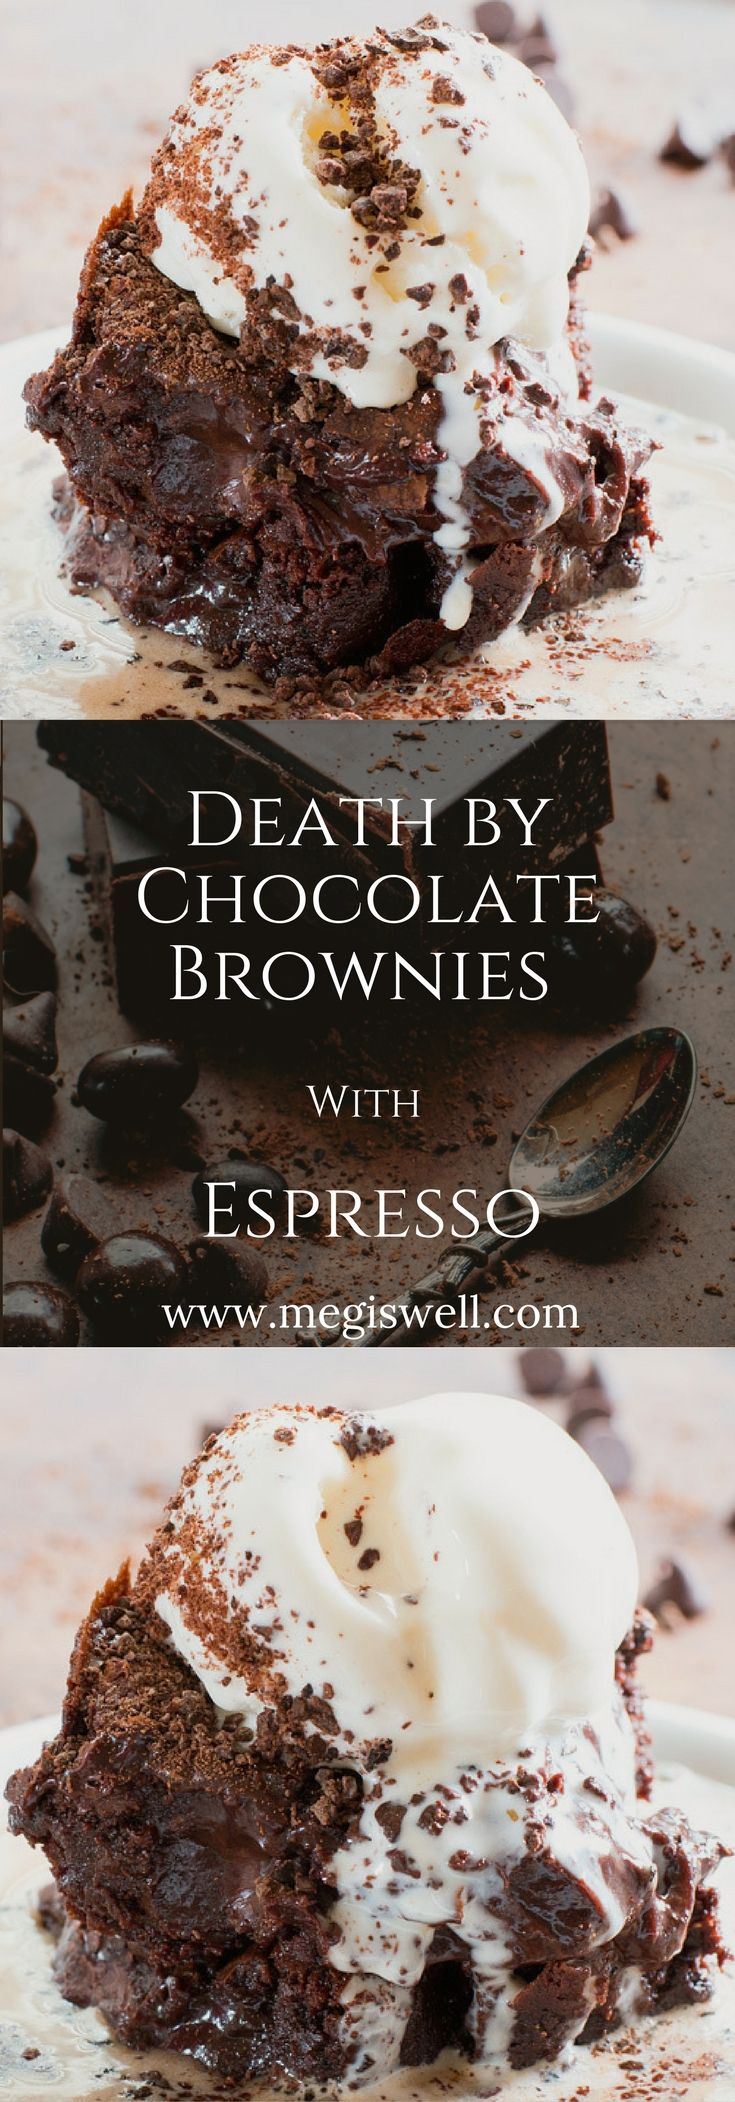 There is so much chocolate in these Death by Chocolate Brownies with Espresso you could die. Only to be revived again by espresso. Chocolate covered espresso beans are ground up into a fine powder, used in both a brownie and fudge batter, and sprinkled on